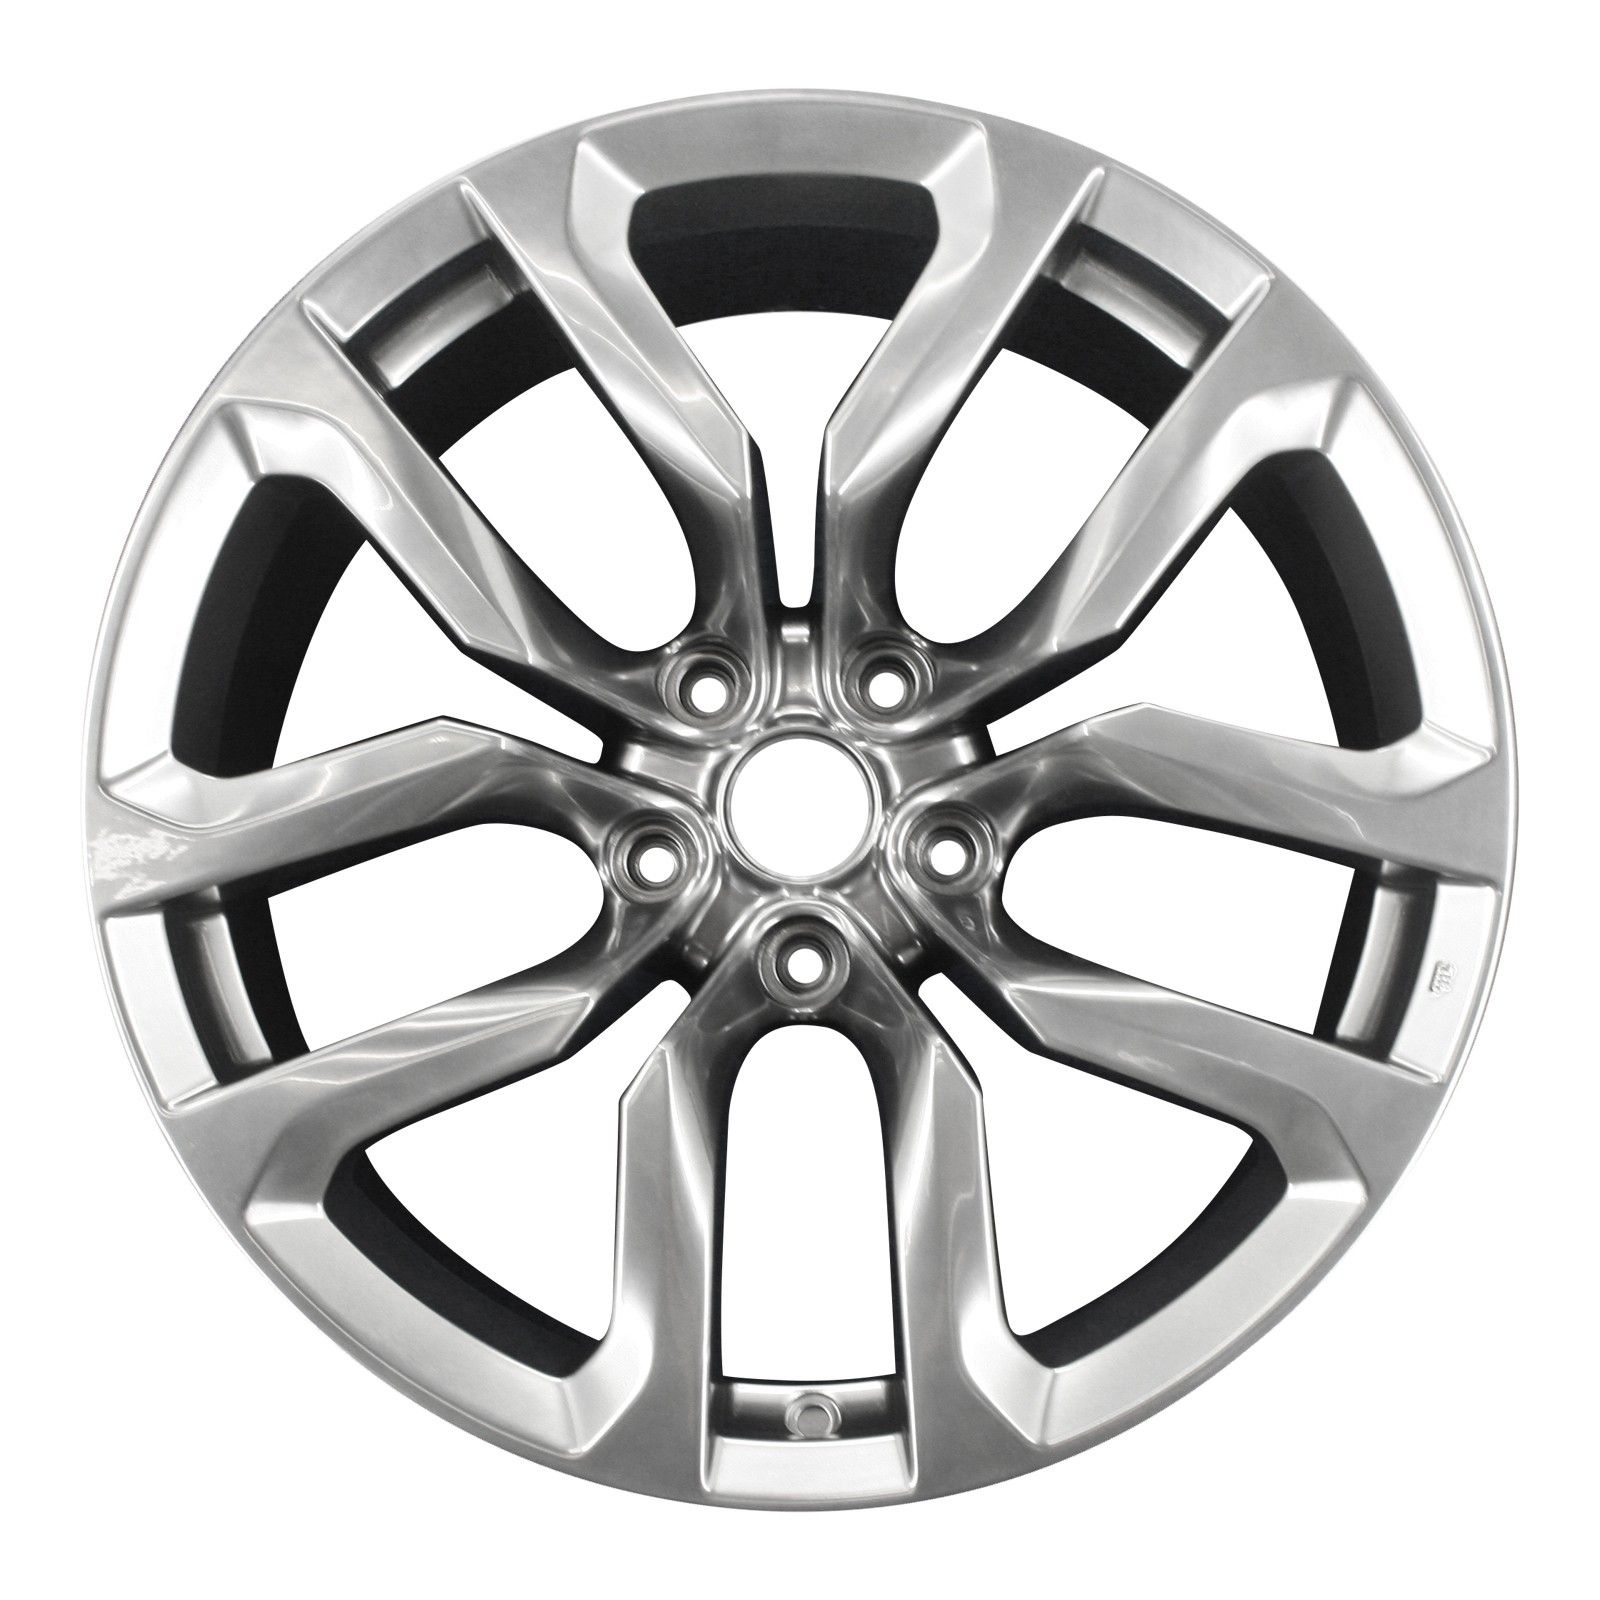 z34 wheels spacers accessories concept z performance New 2015 Nissan Murano nissan infiniti